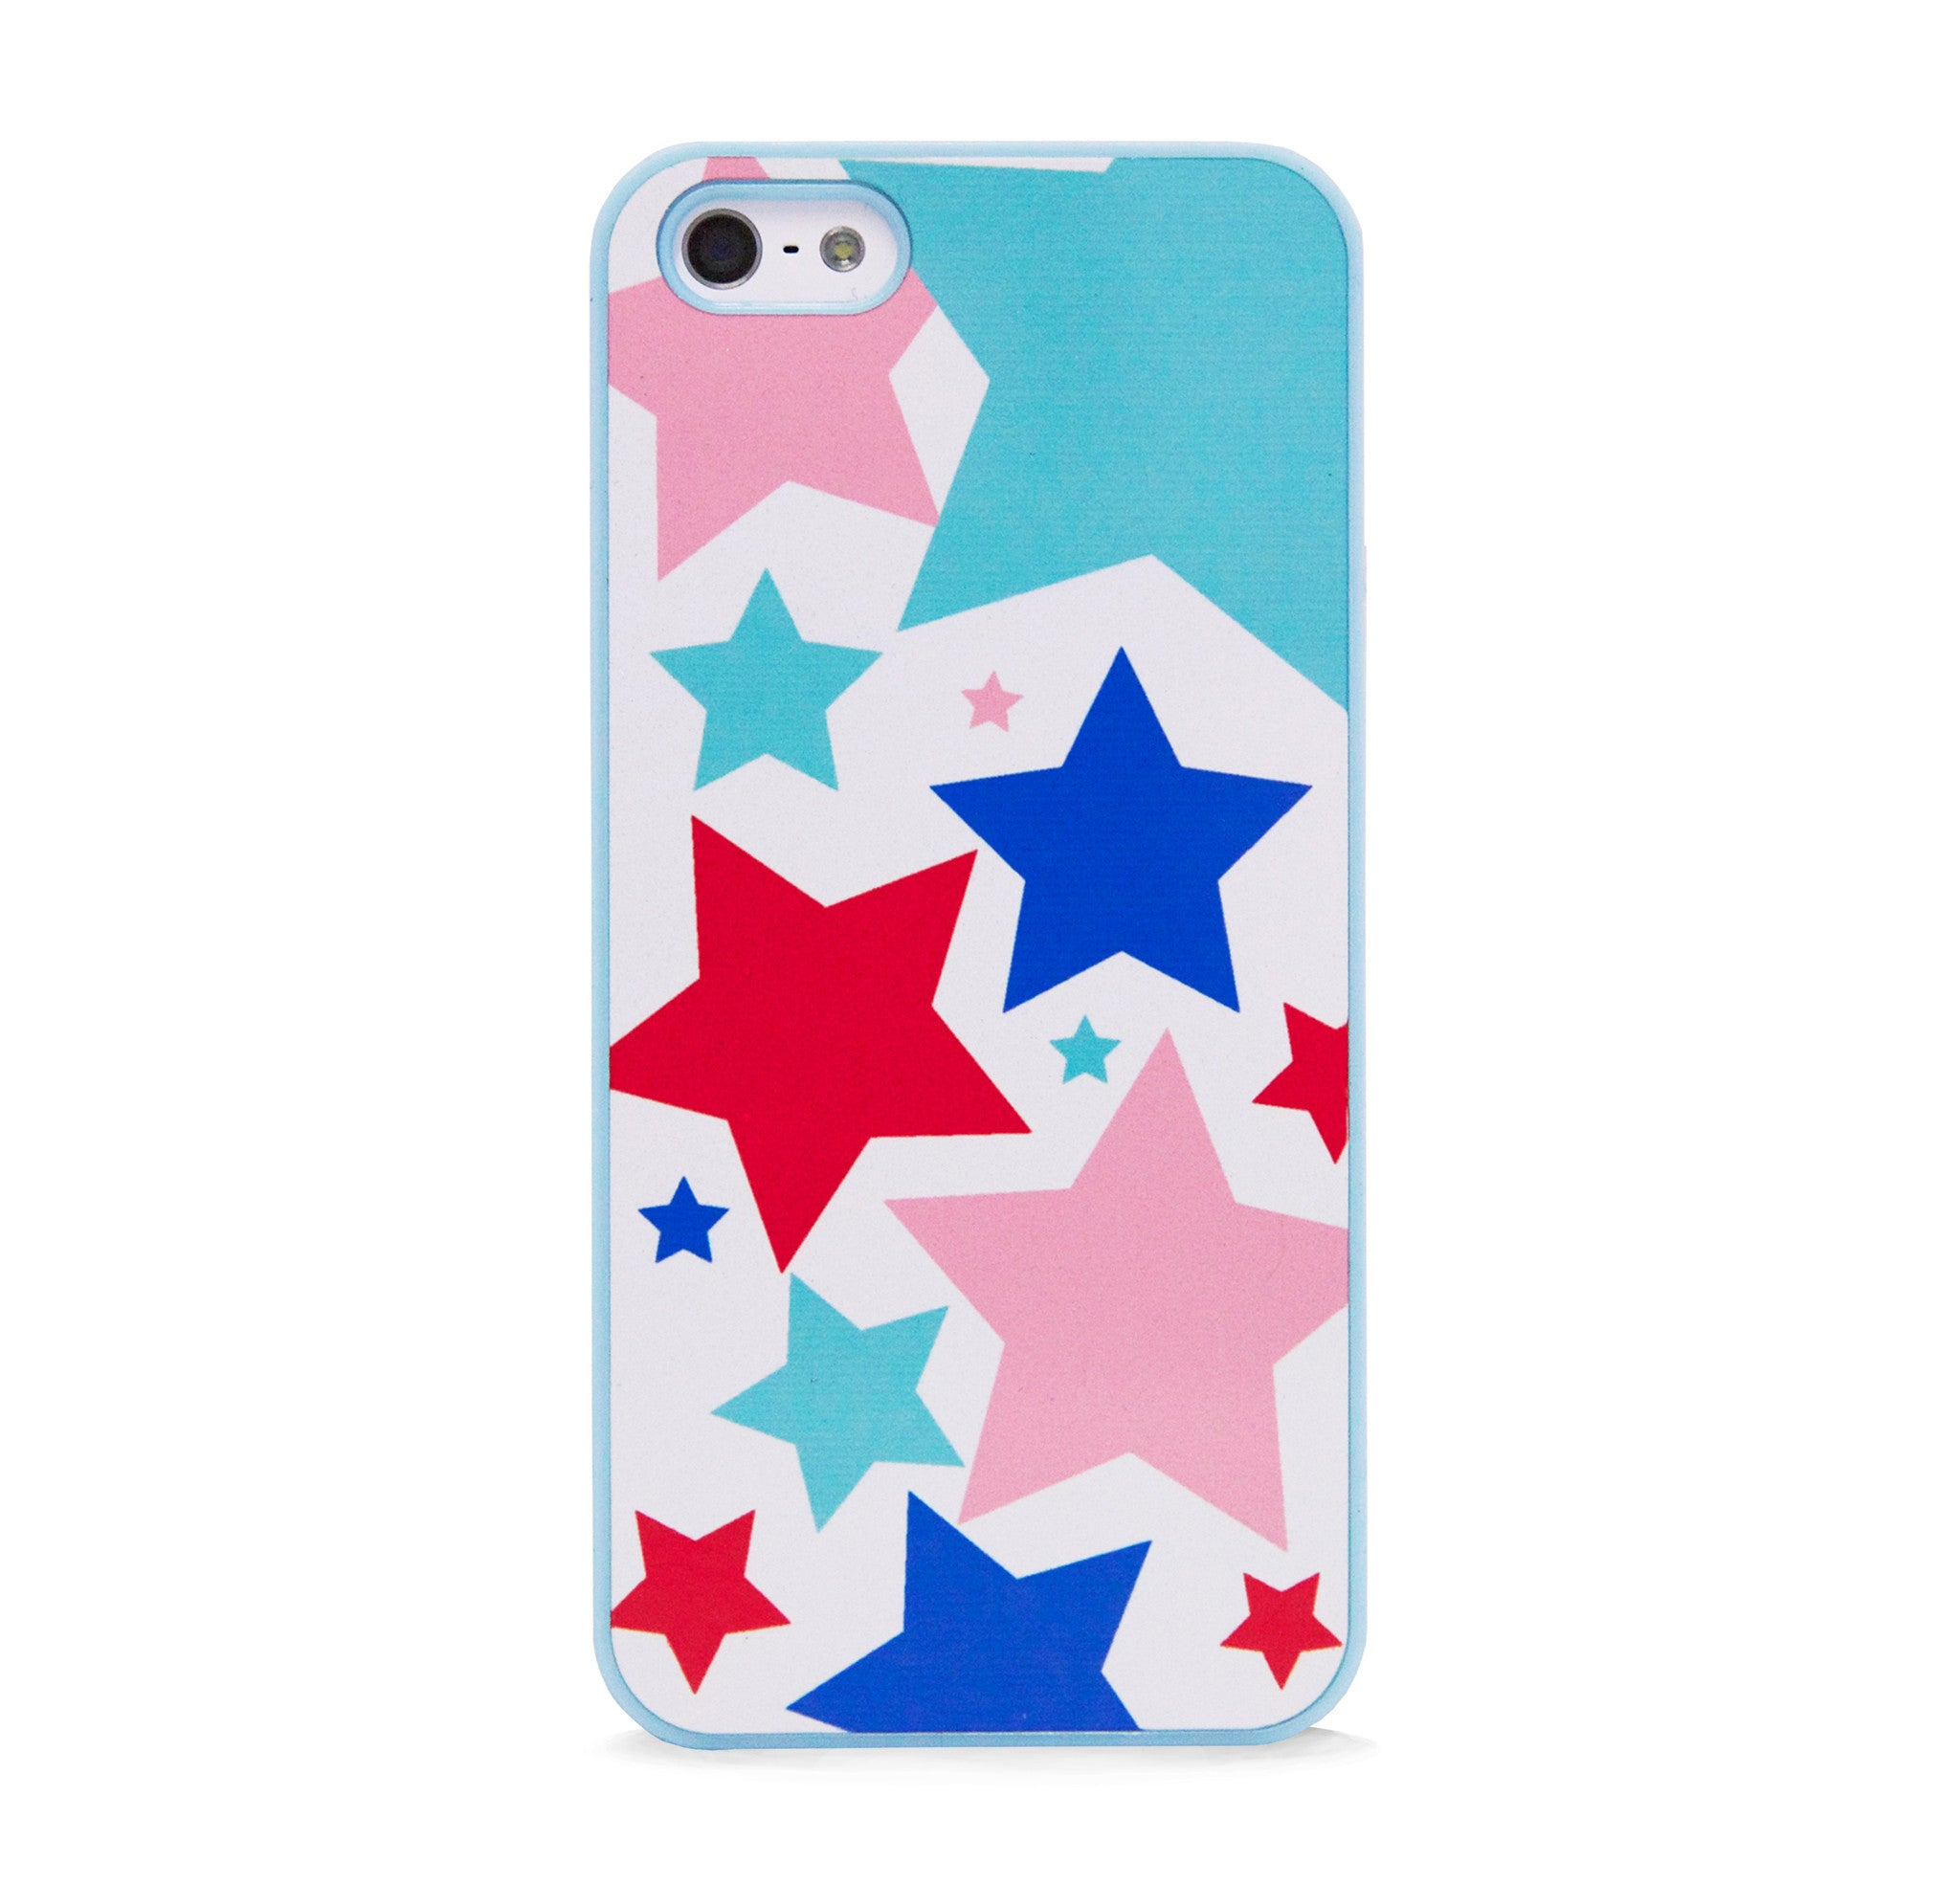 MULTI STAR ALLOVER FOR IPHONE 5/5S, IPHONE SE